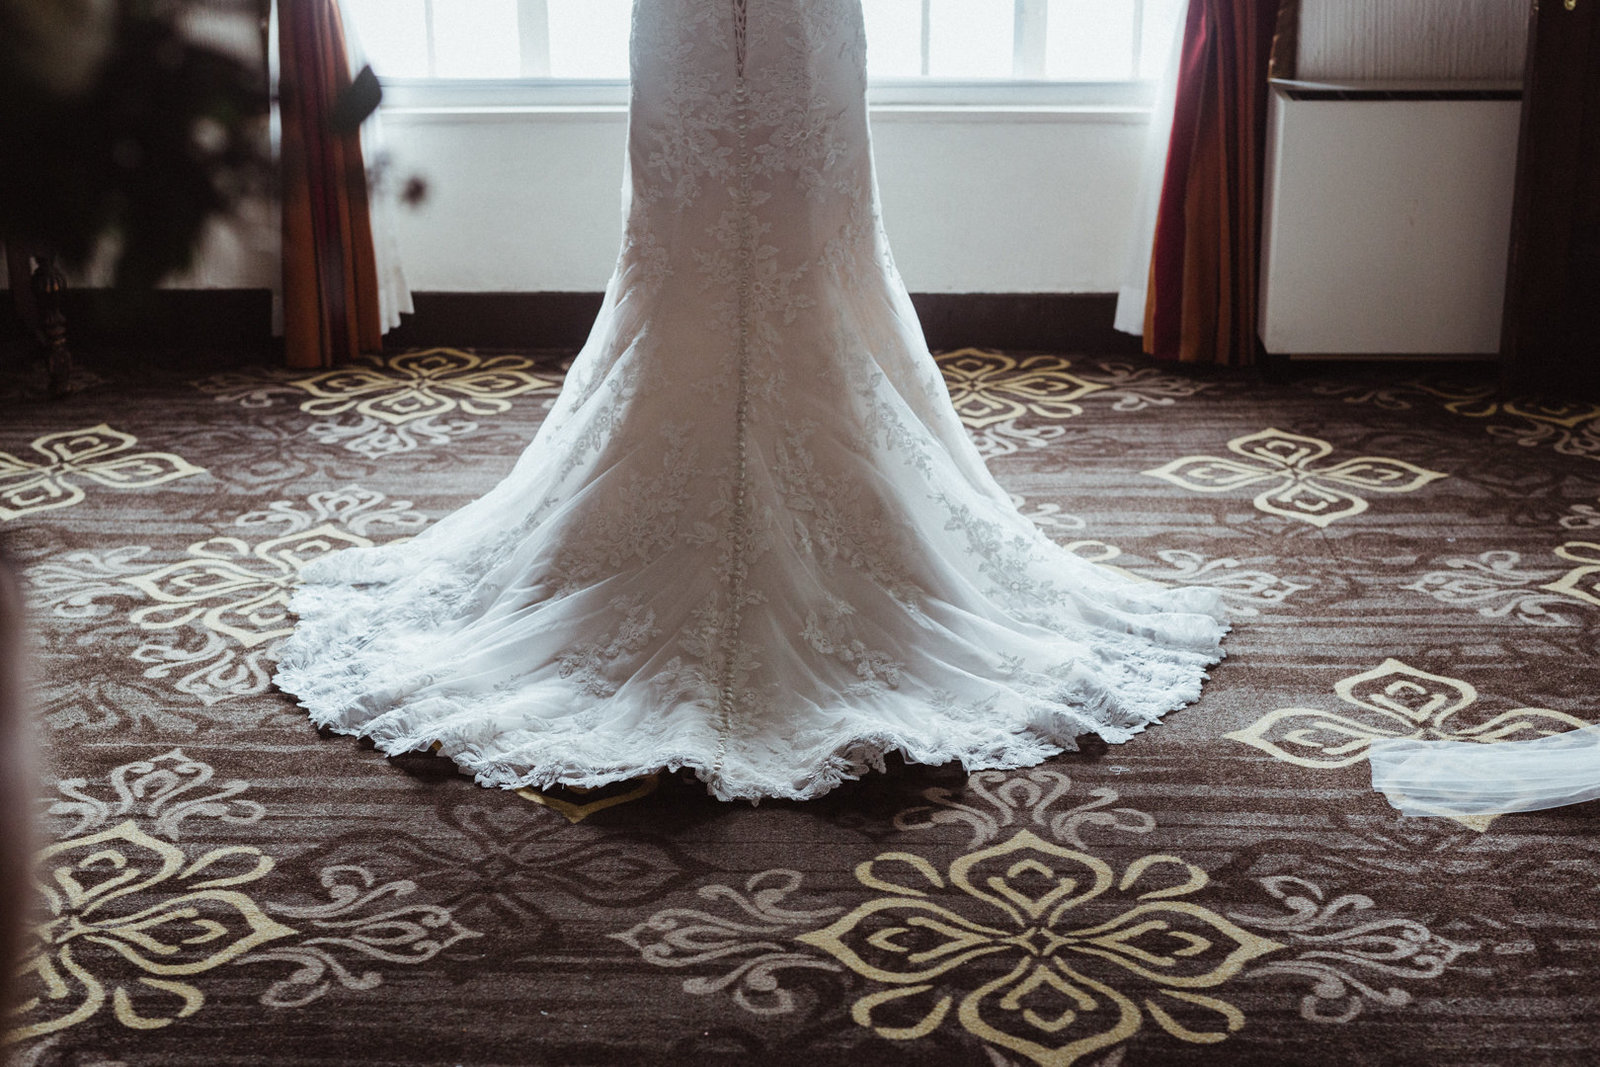 Hotel-Baker-Wedding-Photographer-Chicago-13